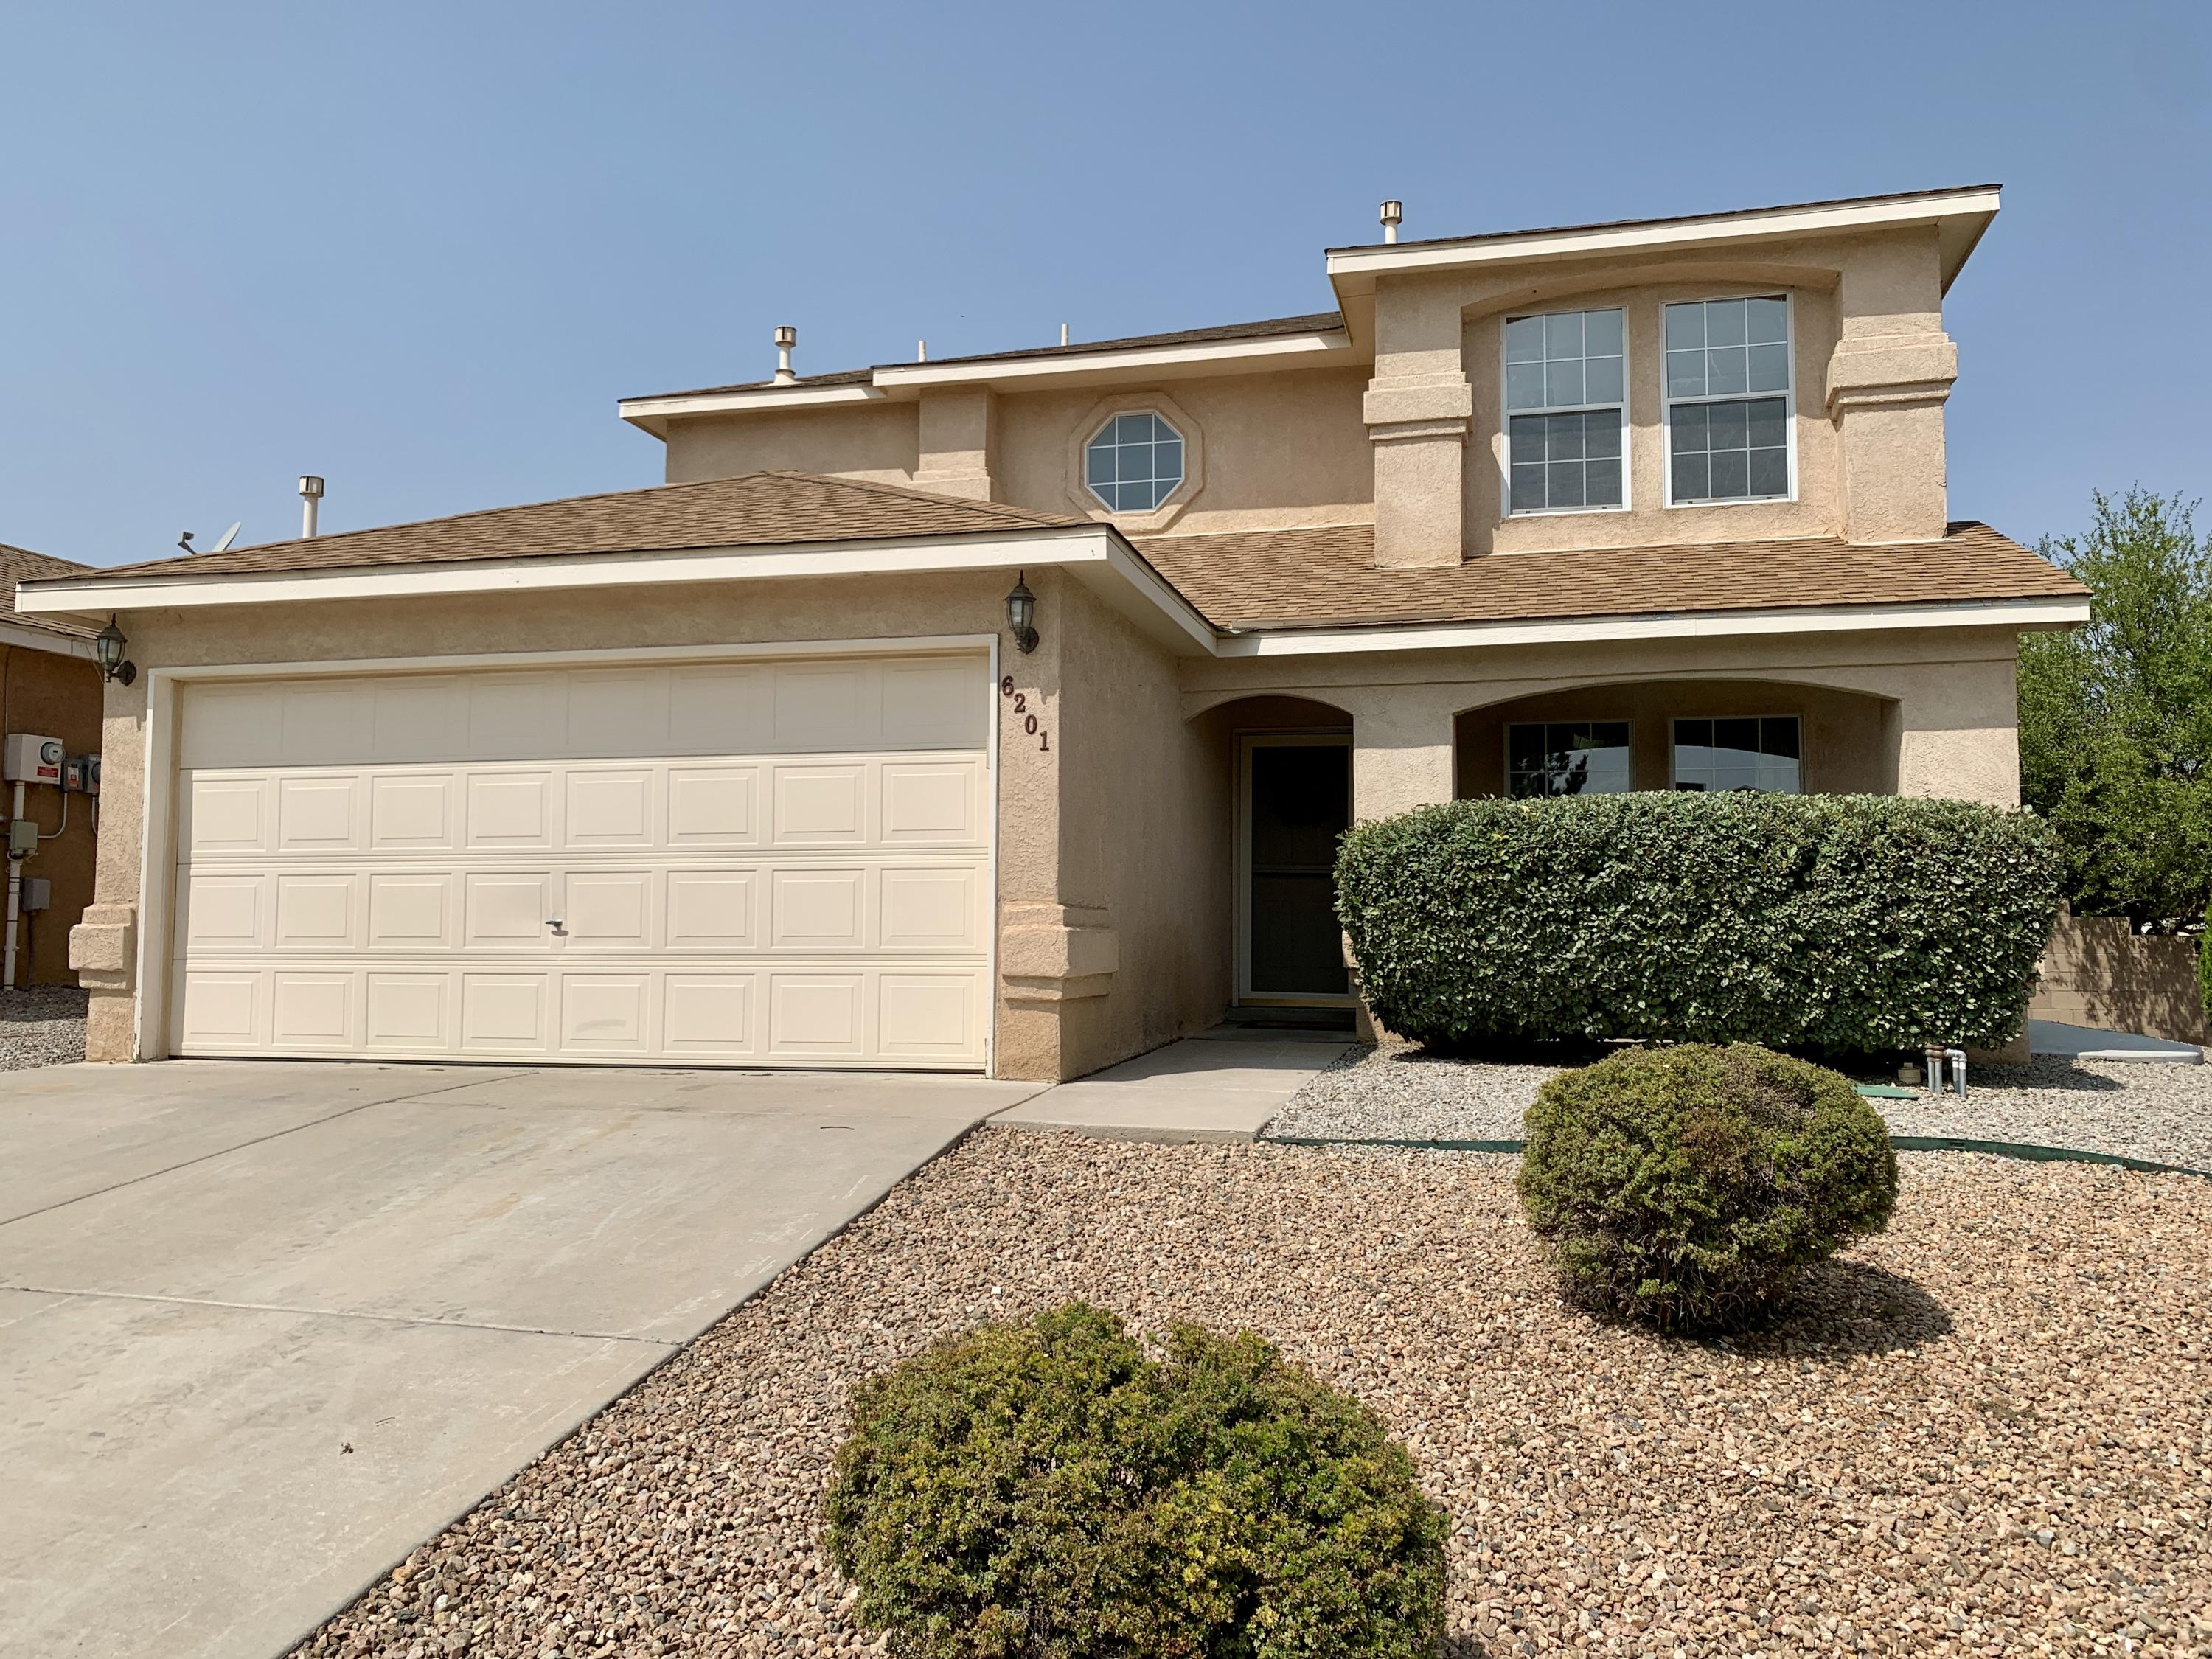 This Fabulous Home in Ventana Ranch features updates throughout.  Updates consist of flooring, appliances, new windows and more!  This 3 bedroom, 2 1/2 bathroom is sure to please!  The backyard is a beautiful oasis featuring a large covered patio and mature landscaping.